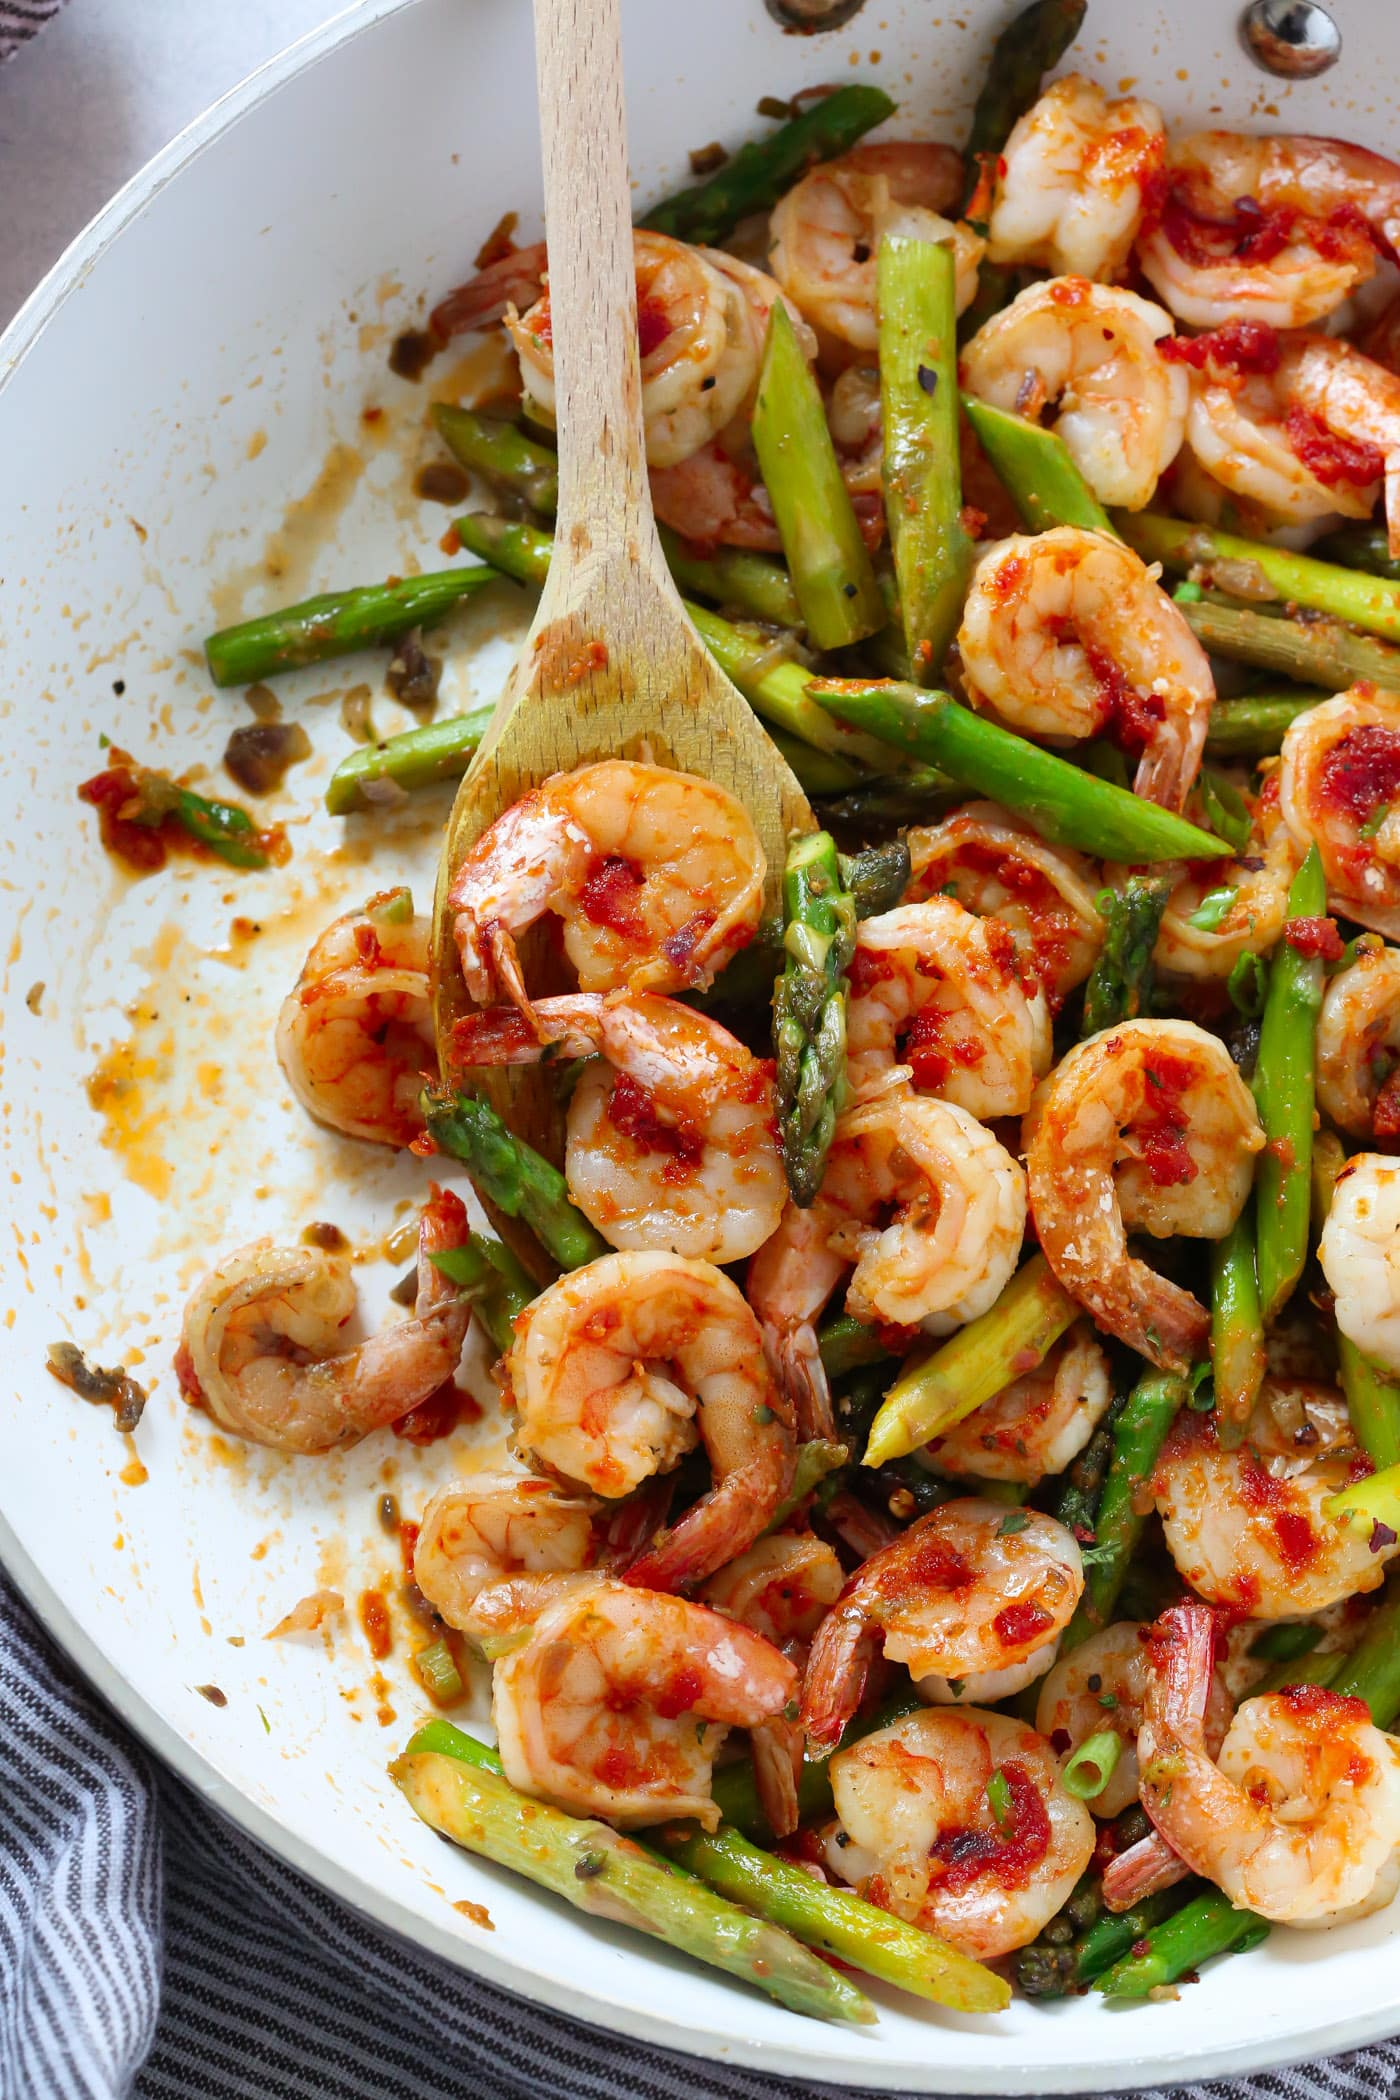 You'll love this Sun-dried Tomato Pesto Shrimp Asparagus Skillet recipe because it's made with super easy homemade sun dried tomato pesto and it's ready in just 20 minutes.